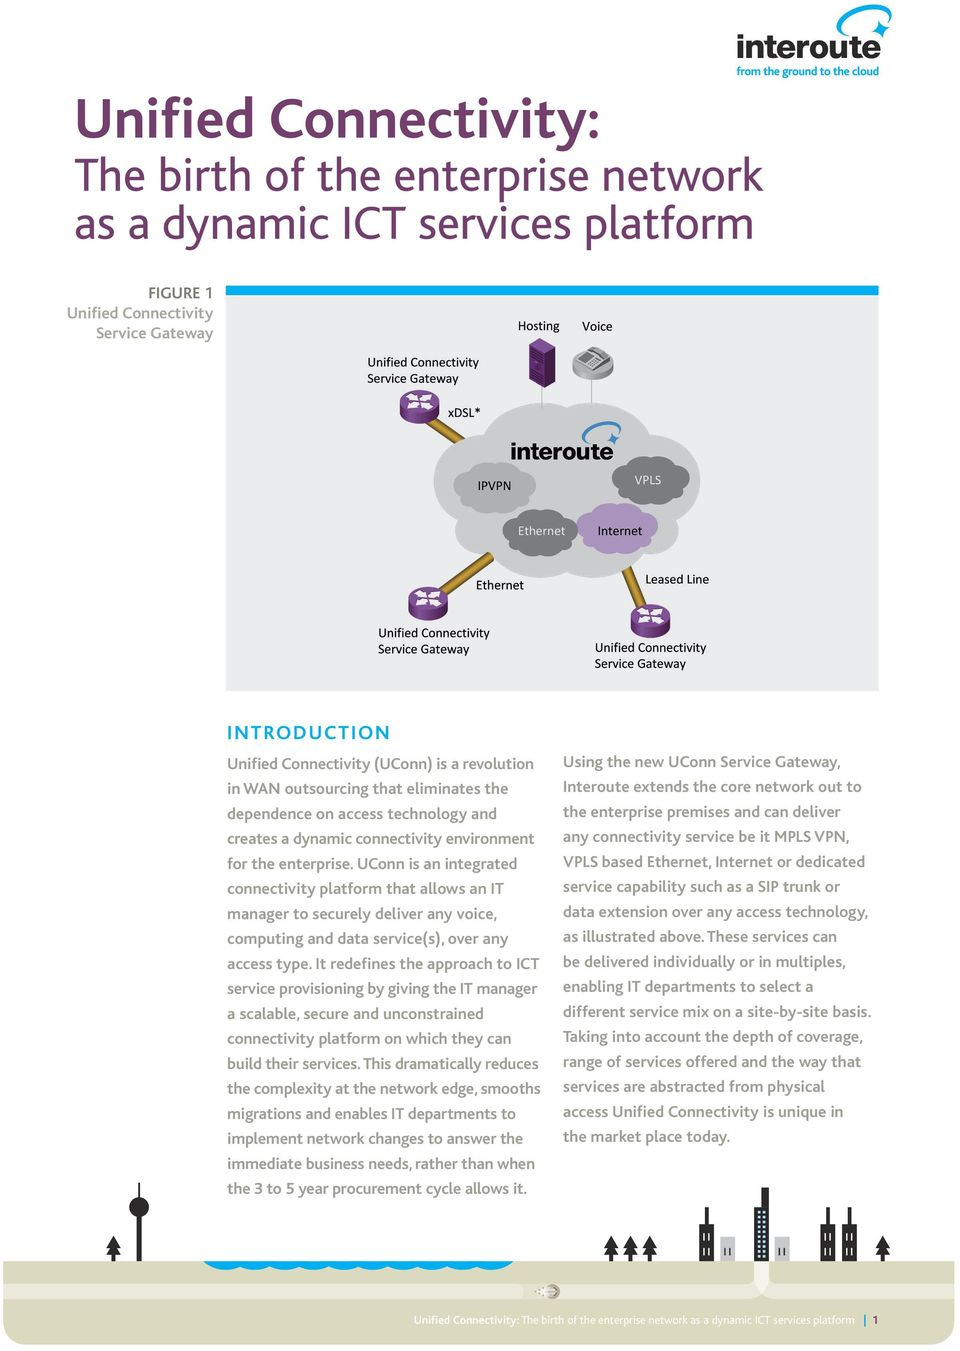 UConn is an integrated connectivity platform that allows an IT manager to securely deliver any voice, computing and data service(s), over any access type.